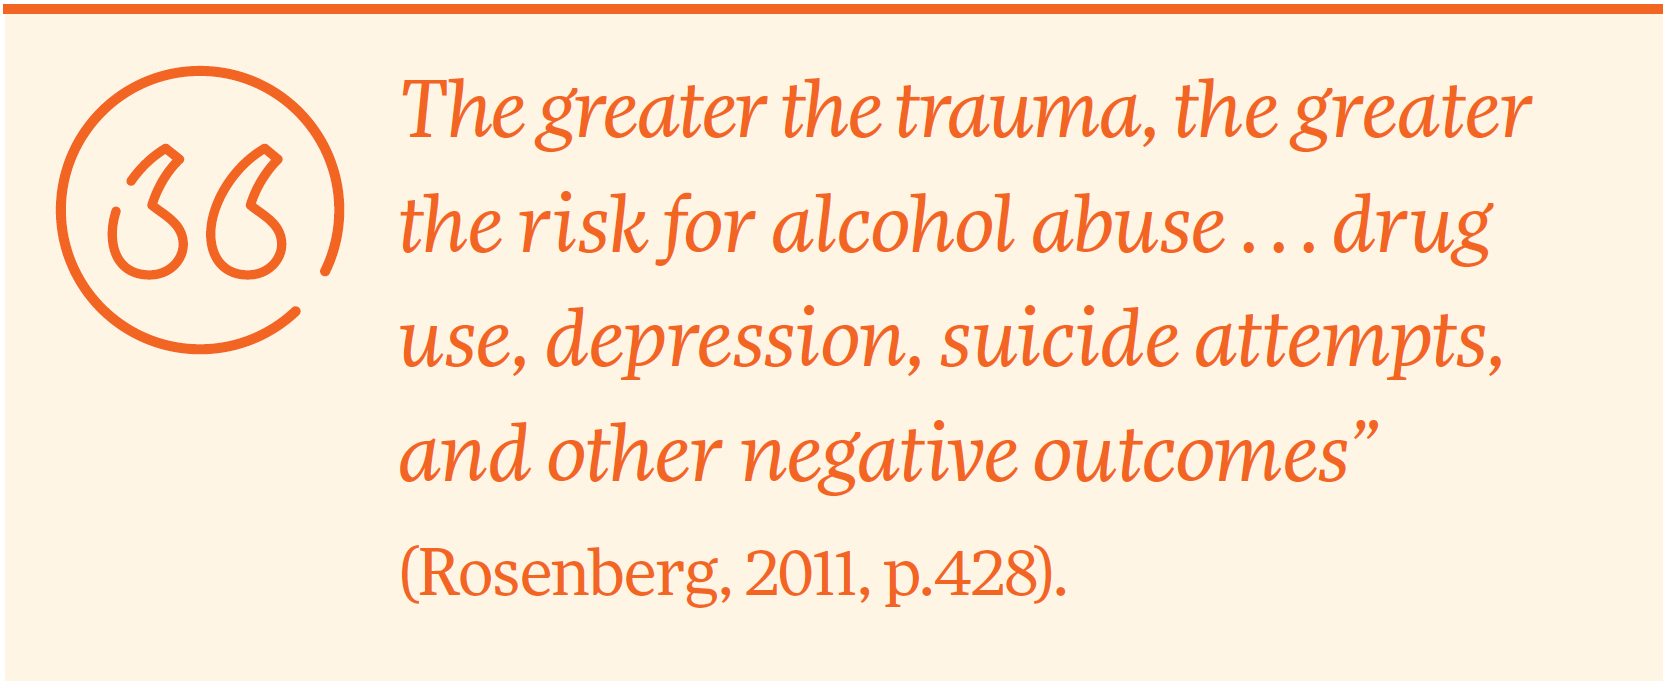 """The greater the trauma, the greater the risk for alcohol abuse . . . drug use, depression, suicide attempts, and other negative outcomes"" (Rosenberg, 2011, p.428)."